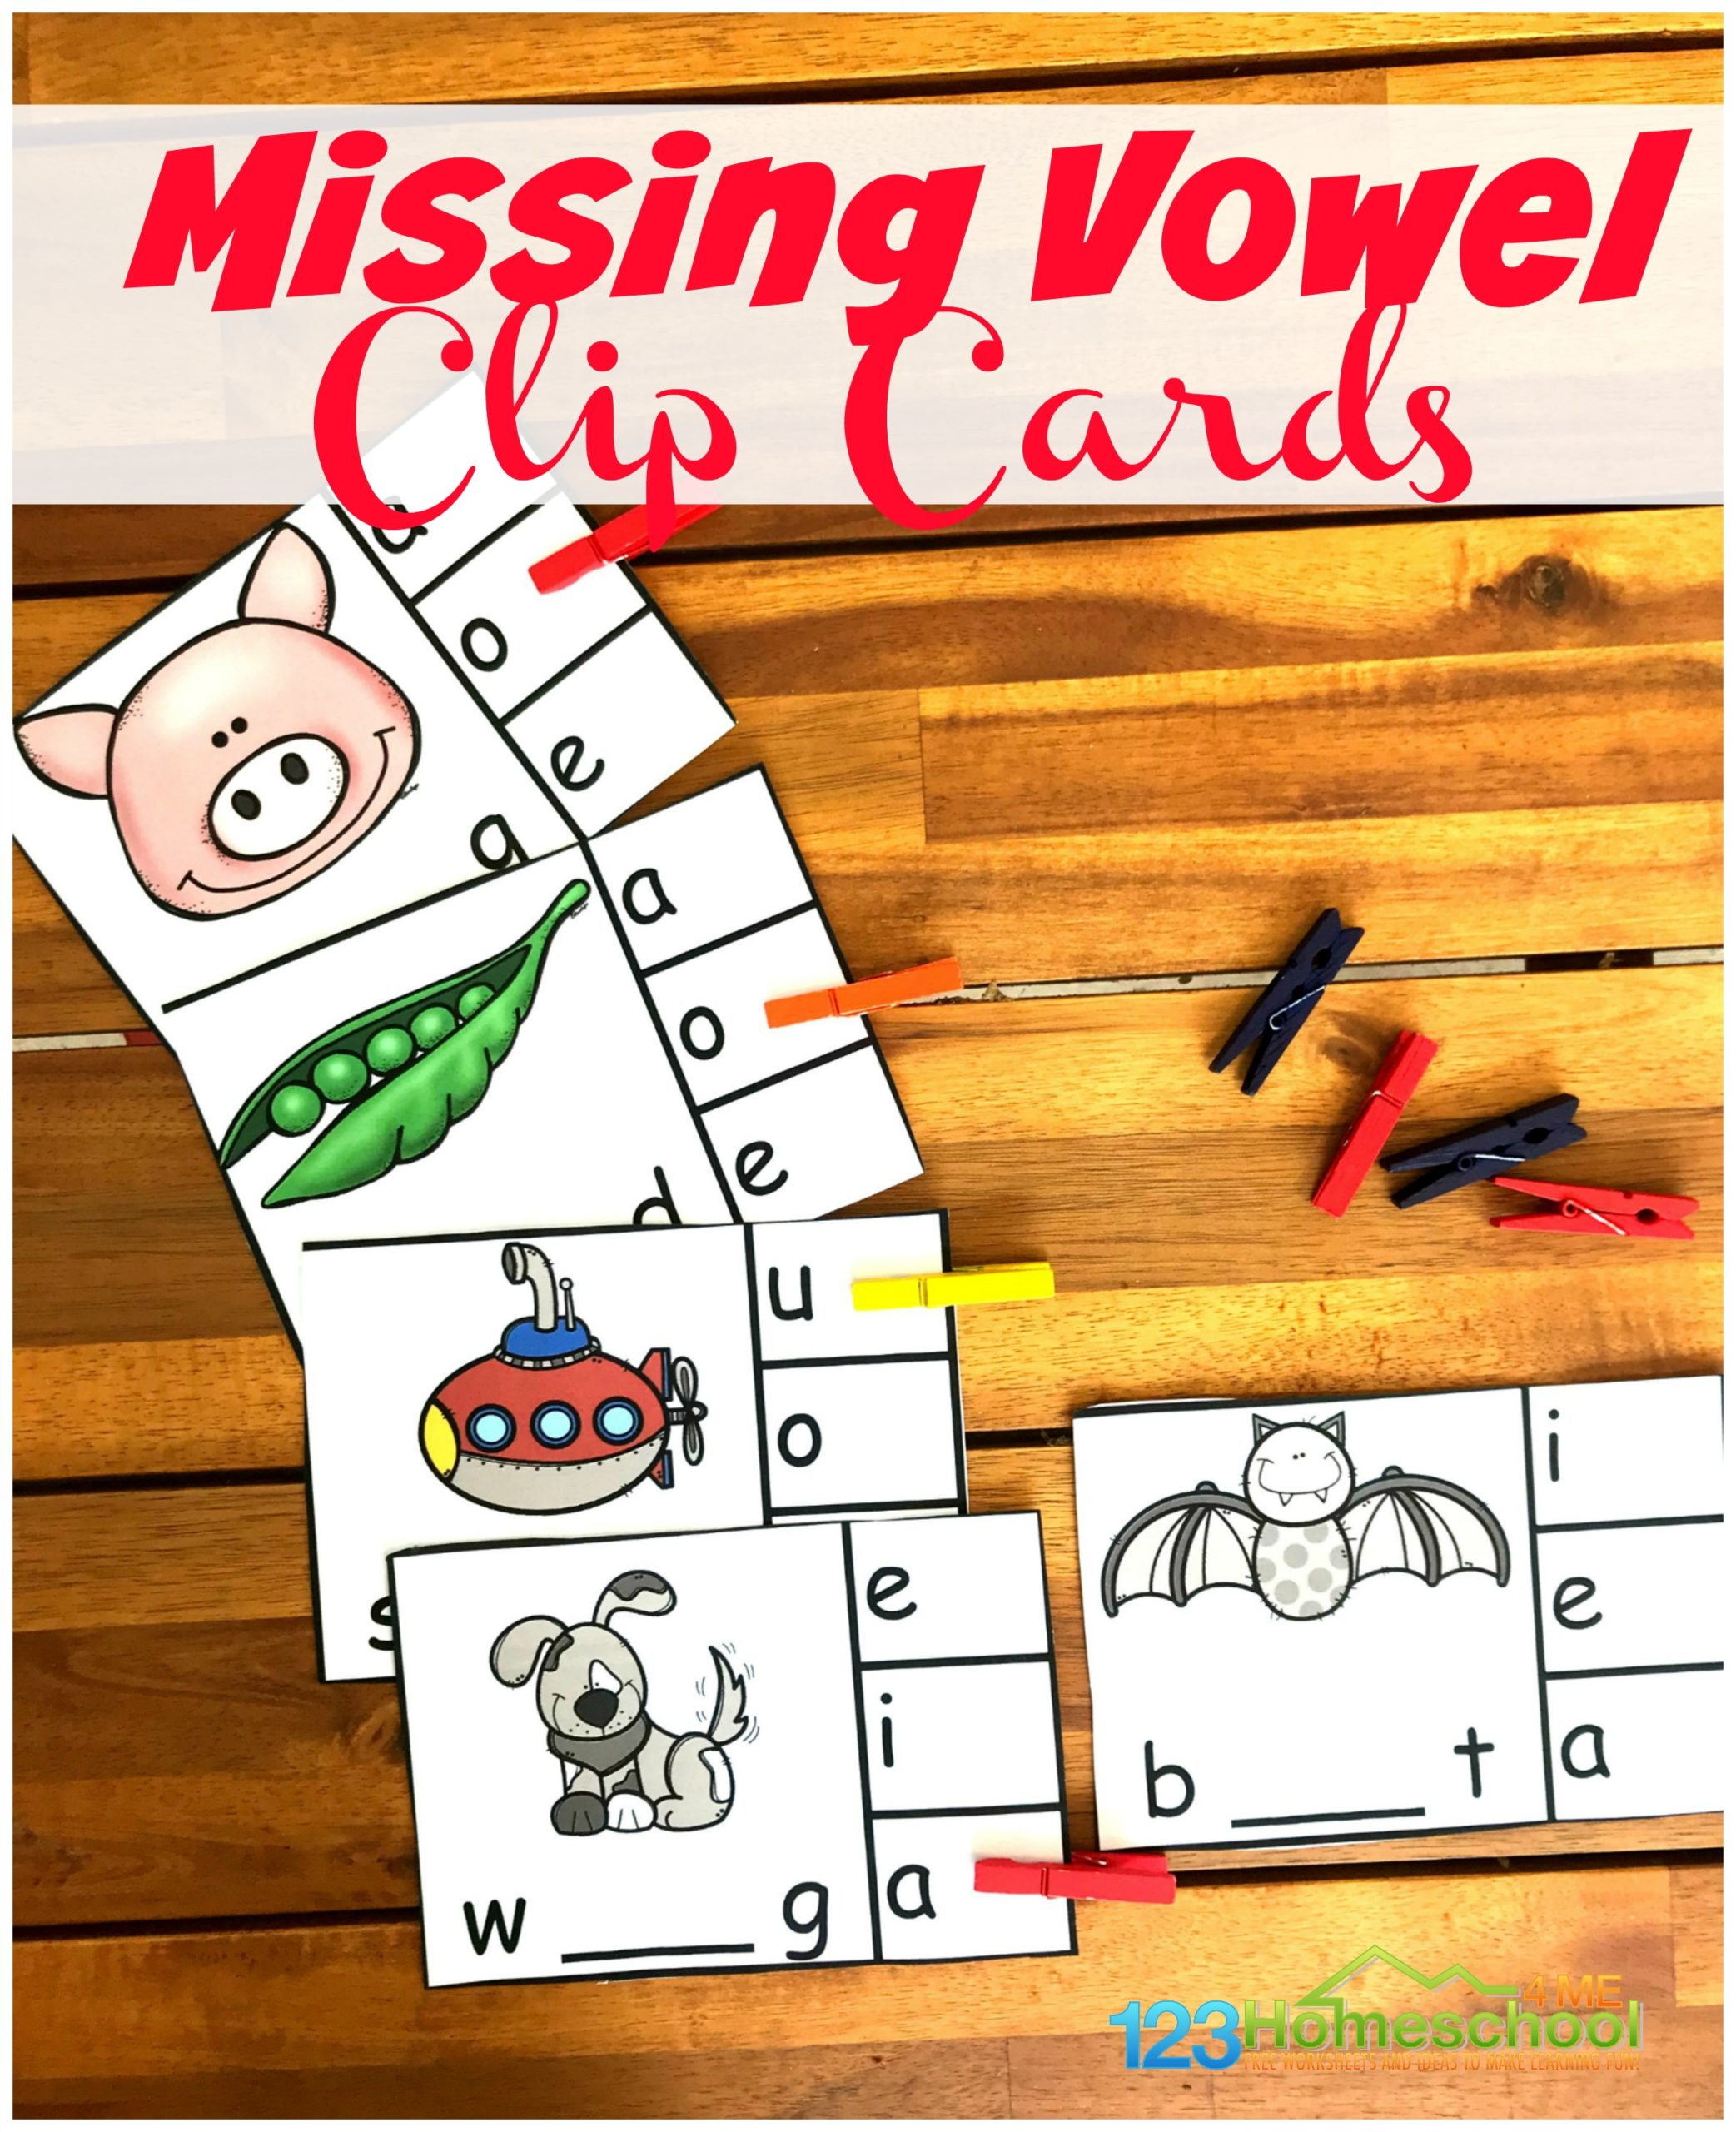 These Missing Vowels Clip Cards are a fun way to teach pre-k and kindergarten children about vowels for kids. Use these Printable Missing Vowels Puzzleswith magnetic letter tiles and/or clothespins to fill in the missing vowels and complete the word. This low prep, missing vowel puzzles printable is a fun early literacy activity to improve phonics skills; I love simple cvc words activity with cute clipart to engage kids!Simply download pdf file with missing vowels puzzles free and you are ready to play and learn.